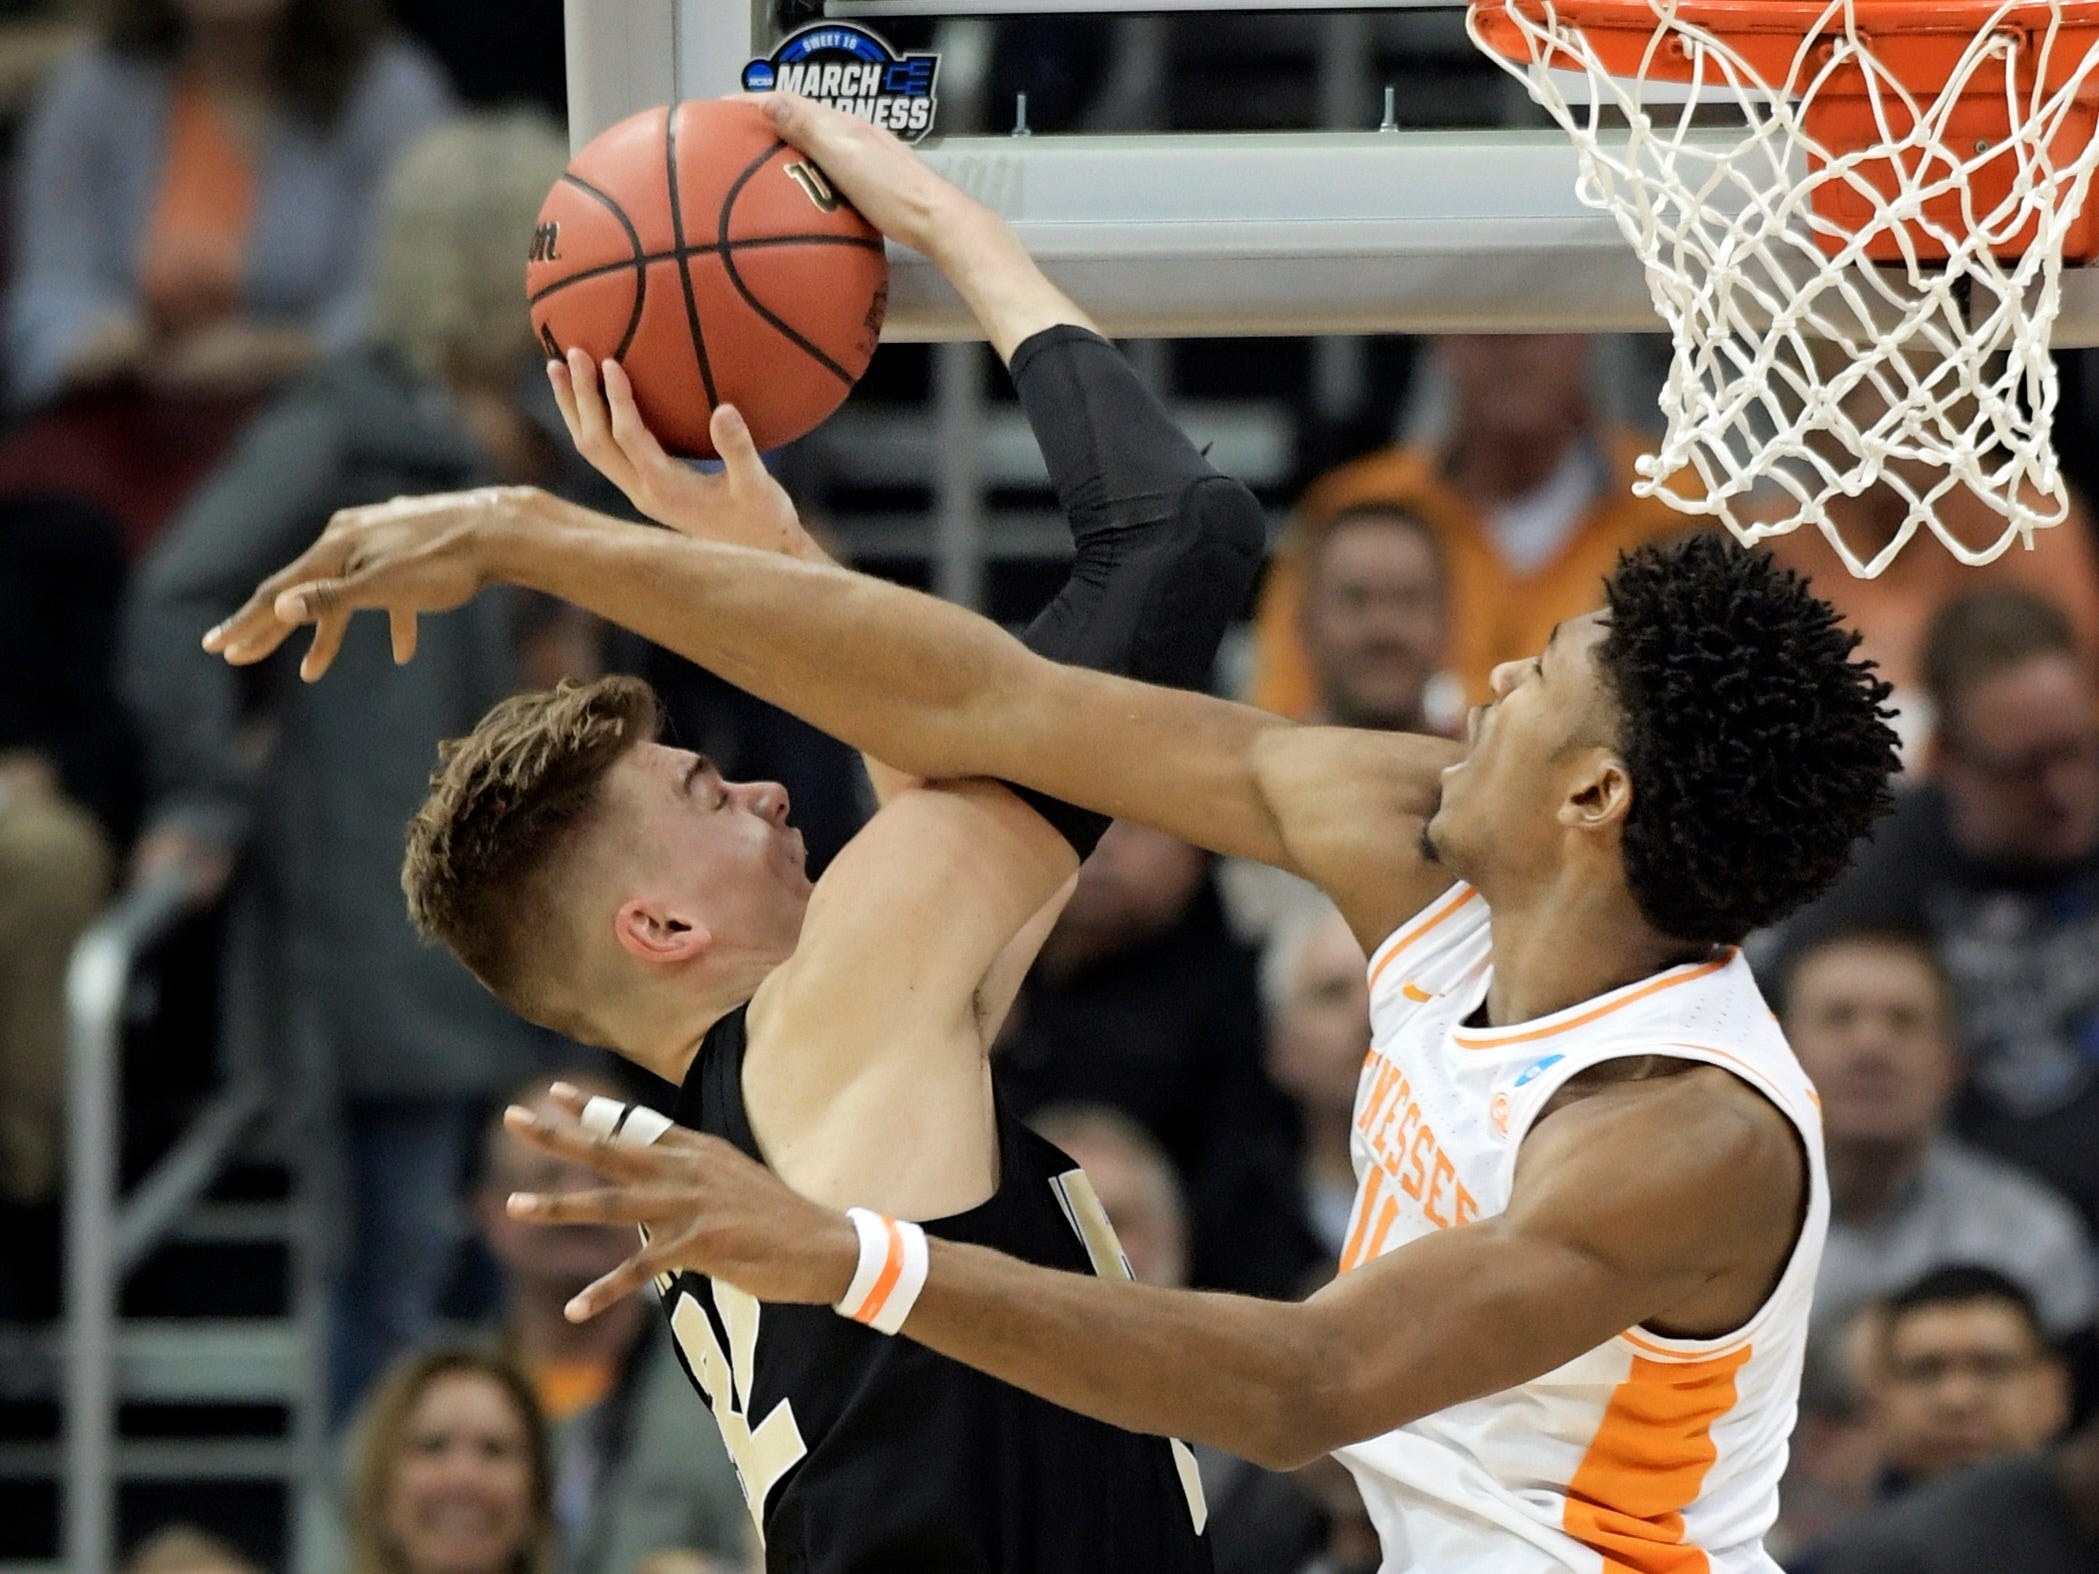 Purdue's Matt Haarms, left, goes to the basket against Tennessee's Kyle Alexander, right, during the first half of a men's NCAA Tournament college basketball South Regional semifinal game Thursday, March 28, 2019, in Louisville, Ky.